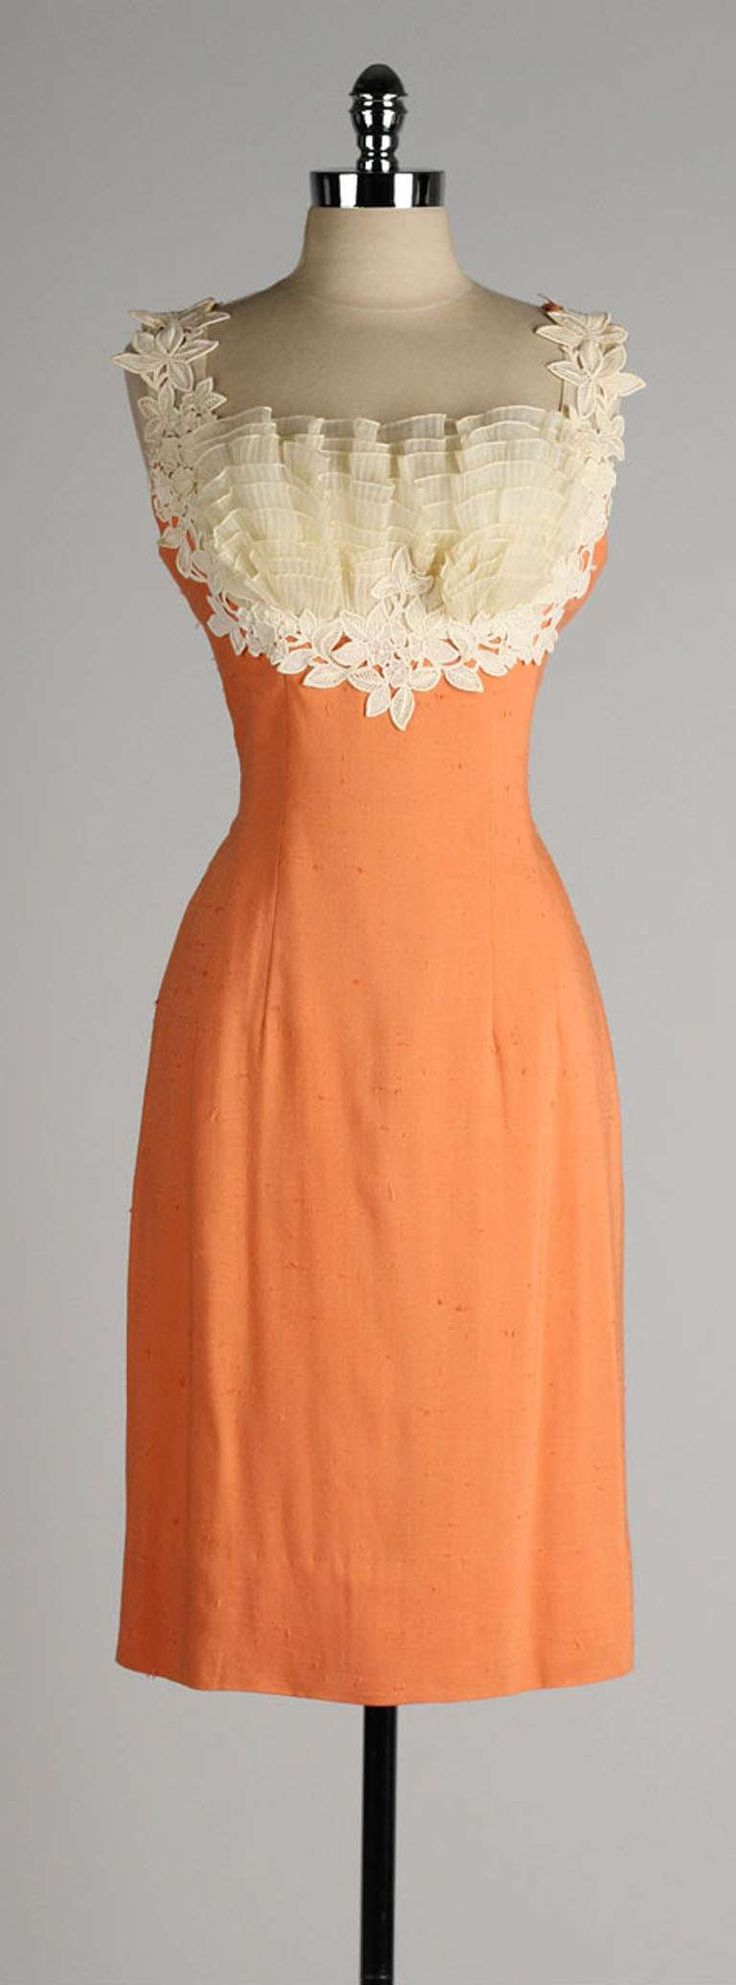 Vintage 1950's Lilli Diamond Apricot Lace Cocktail Dress - this would be AMAZING in black on black!